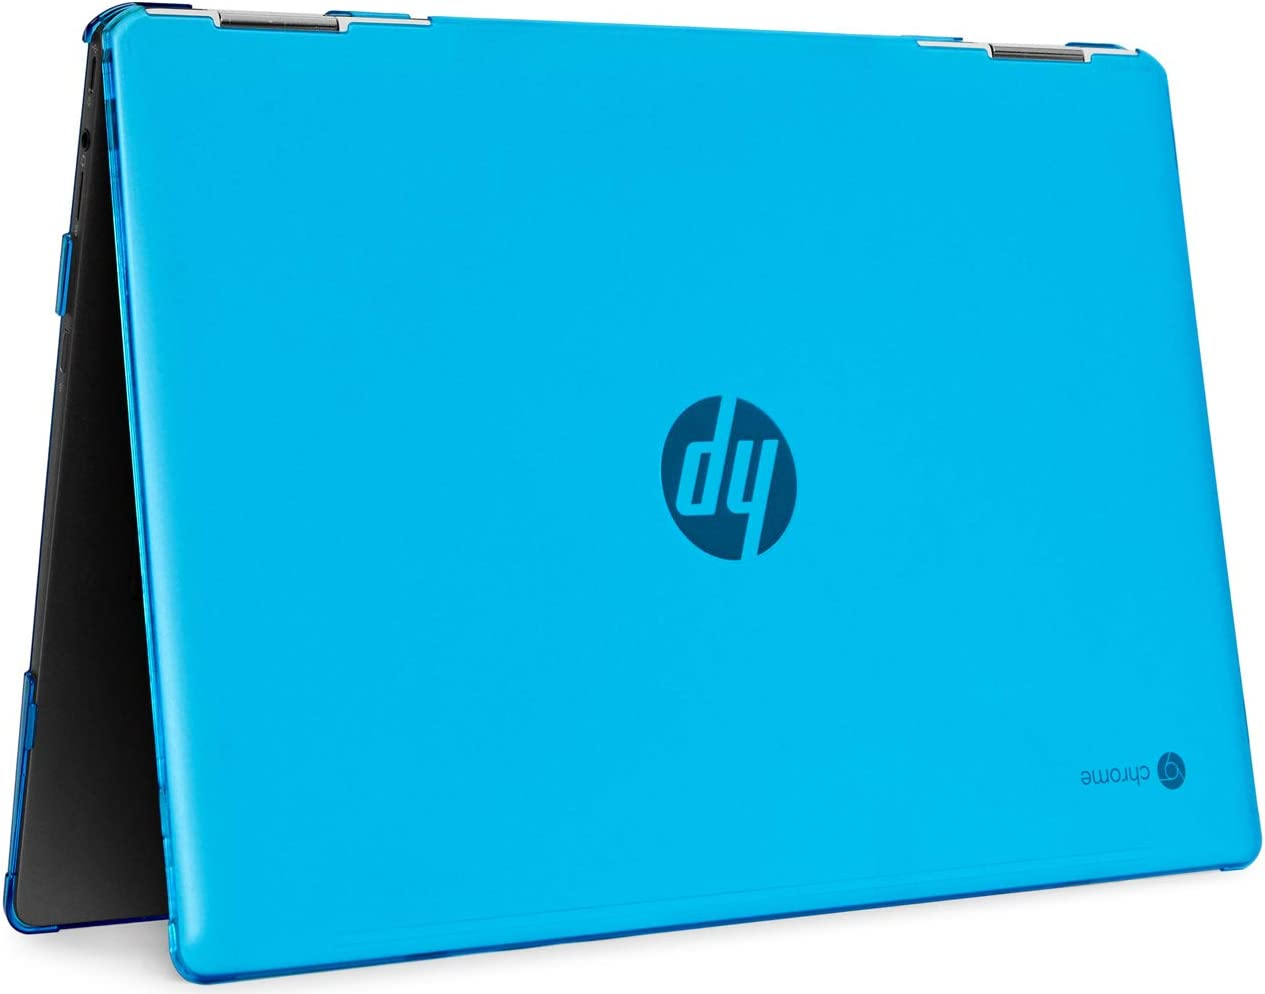 "mCover Hard Shell Case for 14"" HP Chromebook X360 14-DA0000 Series laptops (NOT Compatible with Other HP Chromebook & Windows laptops) (Aqua)"